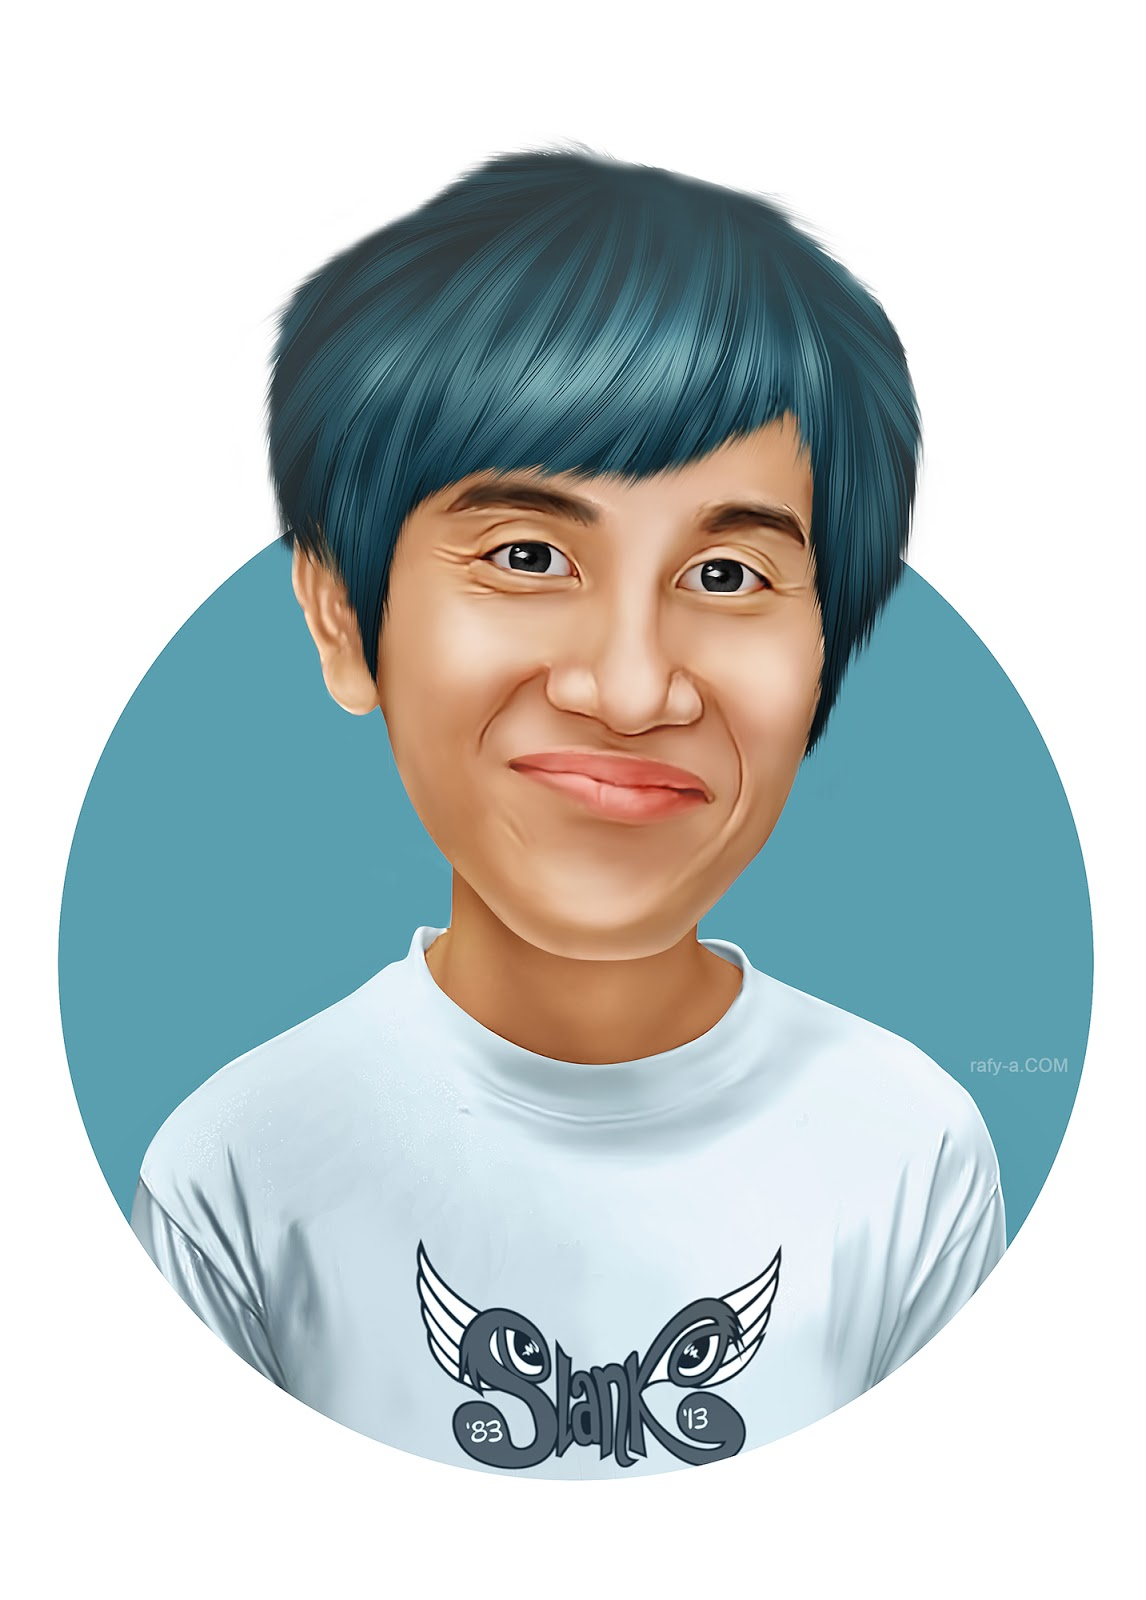 Smudge painted looks caricature photoshop effect tutorial rafy a smudge painted looks caricature photoshop effect tutorial baditri Images